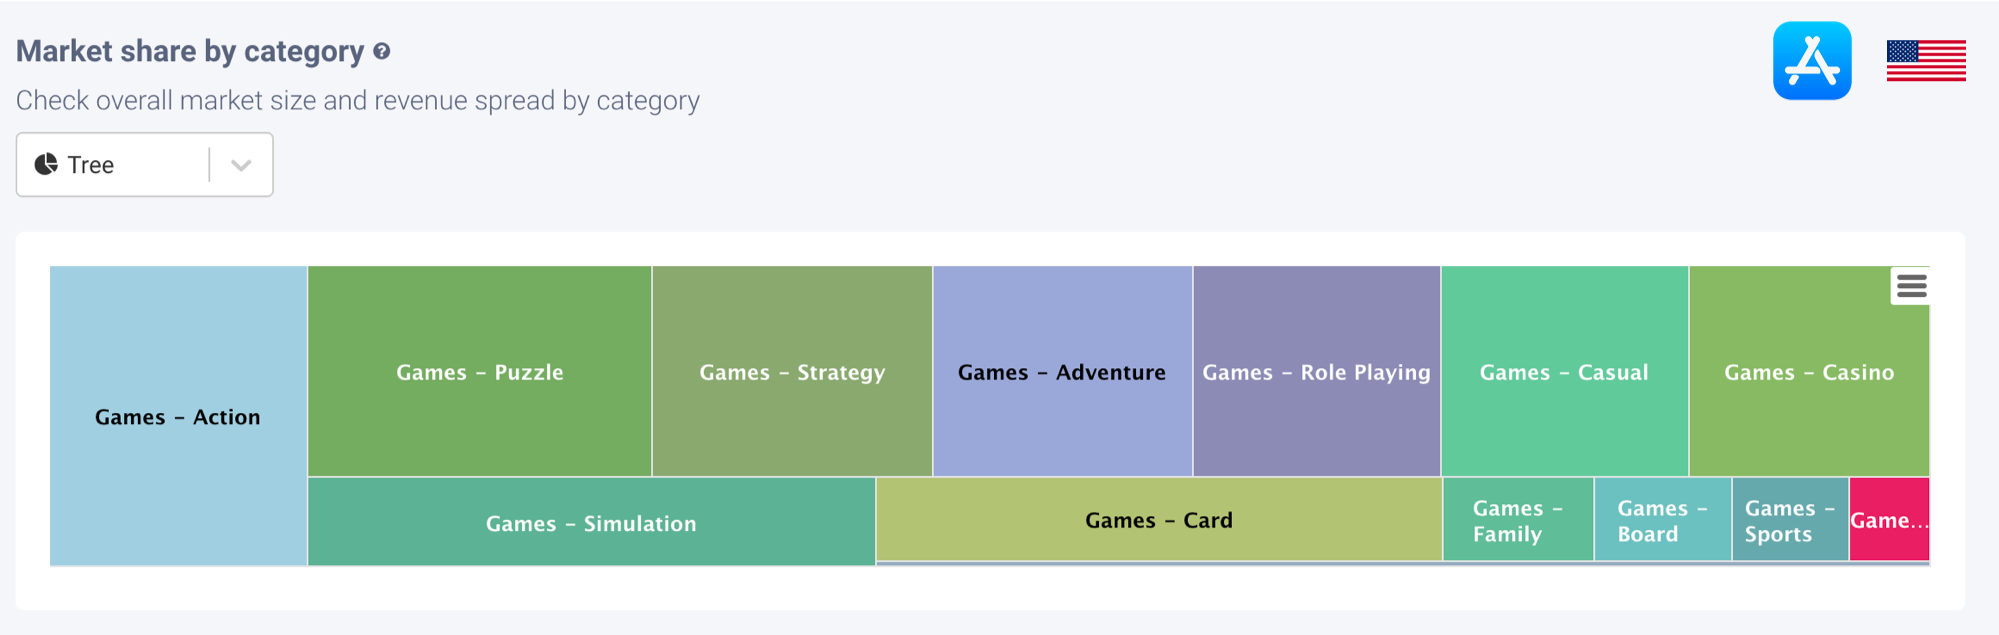 AppTweak Market Intelligence: US Revenue Share by Game Category - Apple App Store